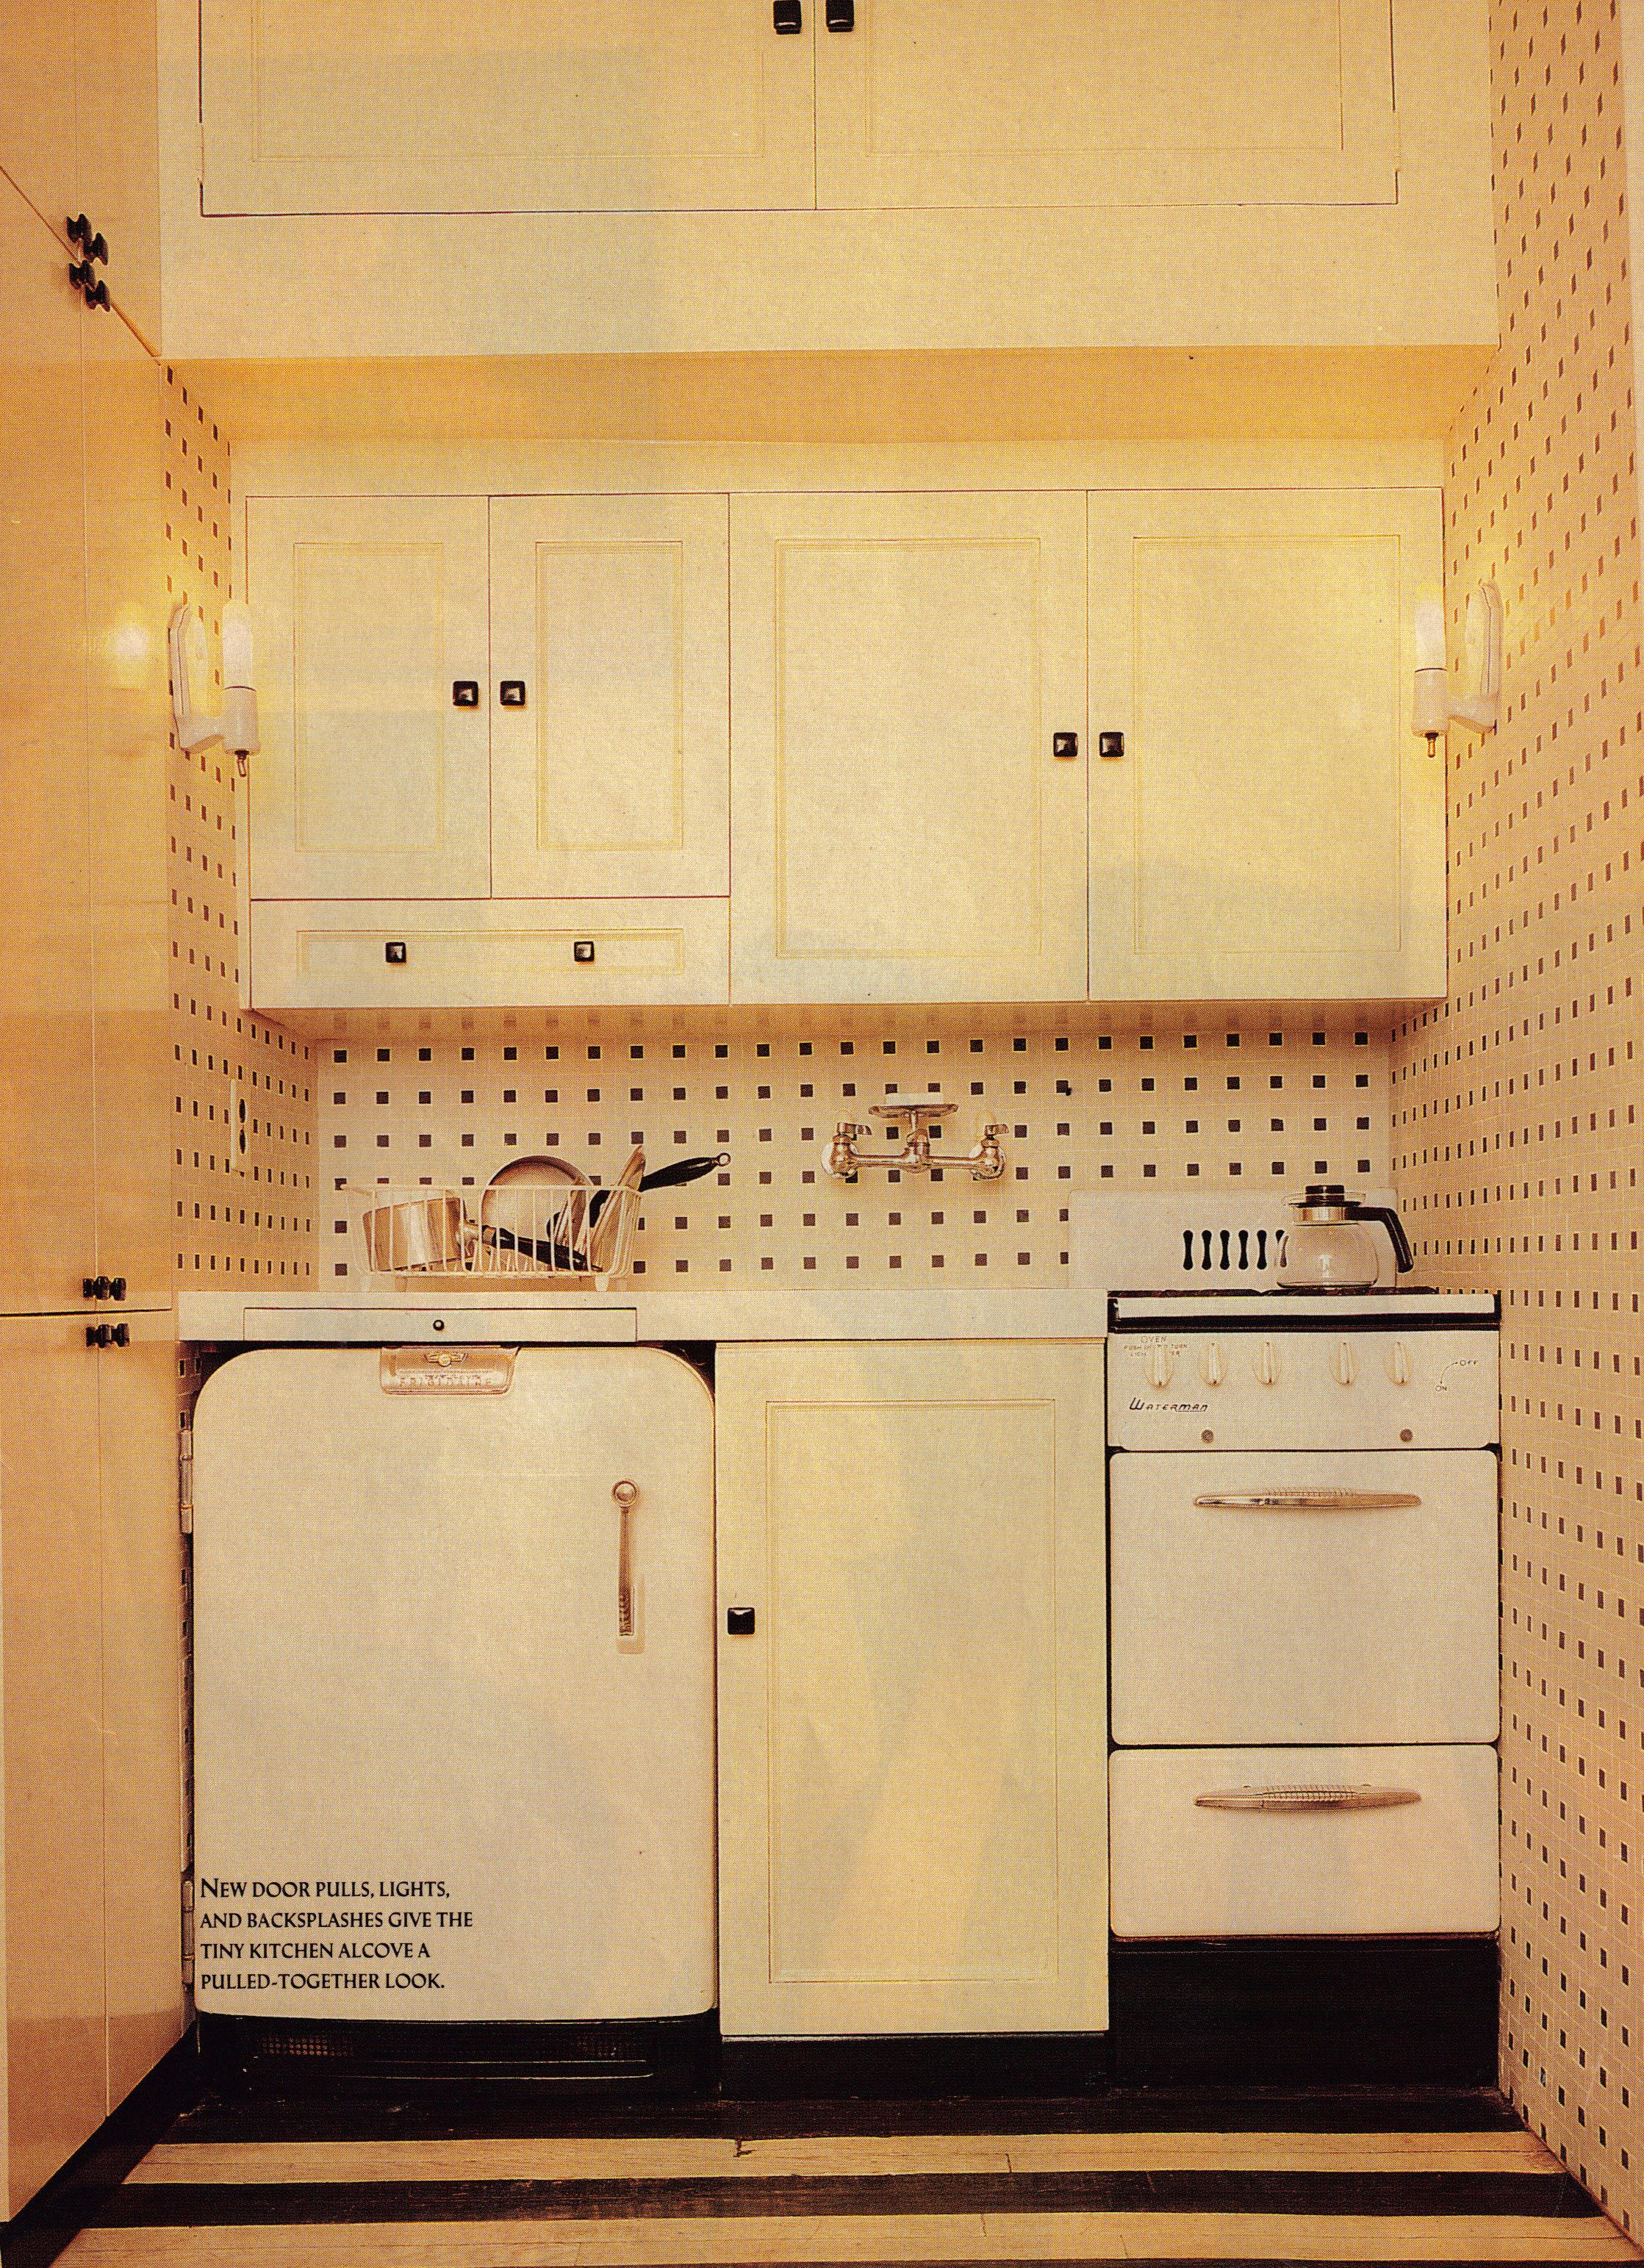 Kitchen Alcove A Tiny New York City Apartment Kitchen Alcove Simply Updated With